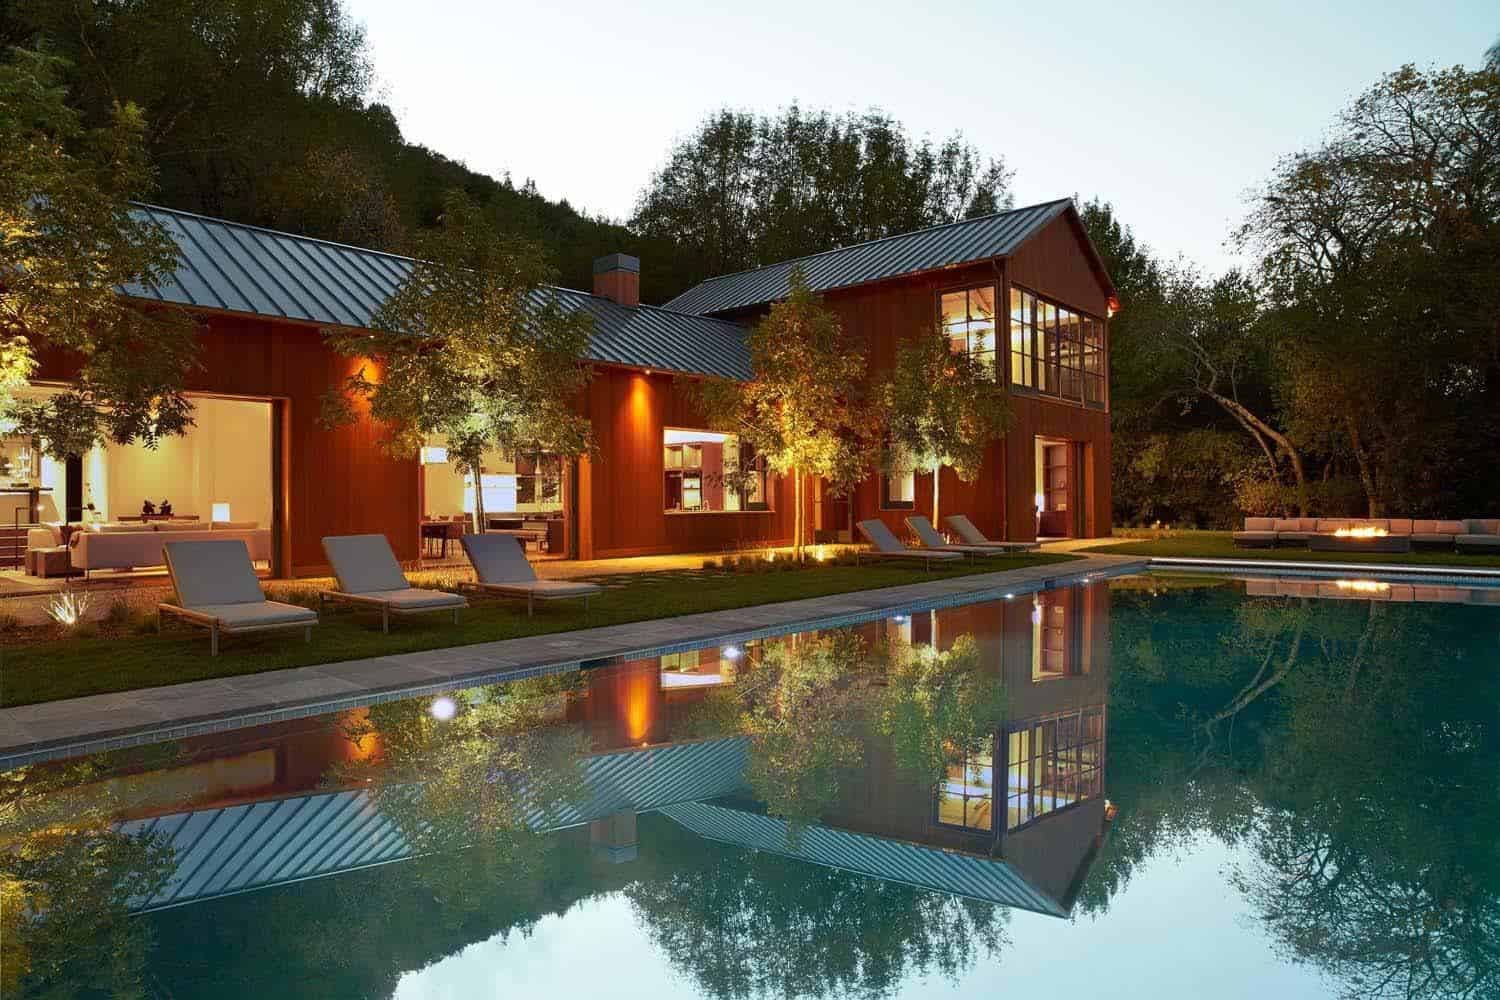 Delightful Sonoma wine country weekend retreat for relaxation